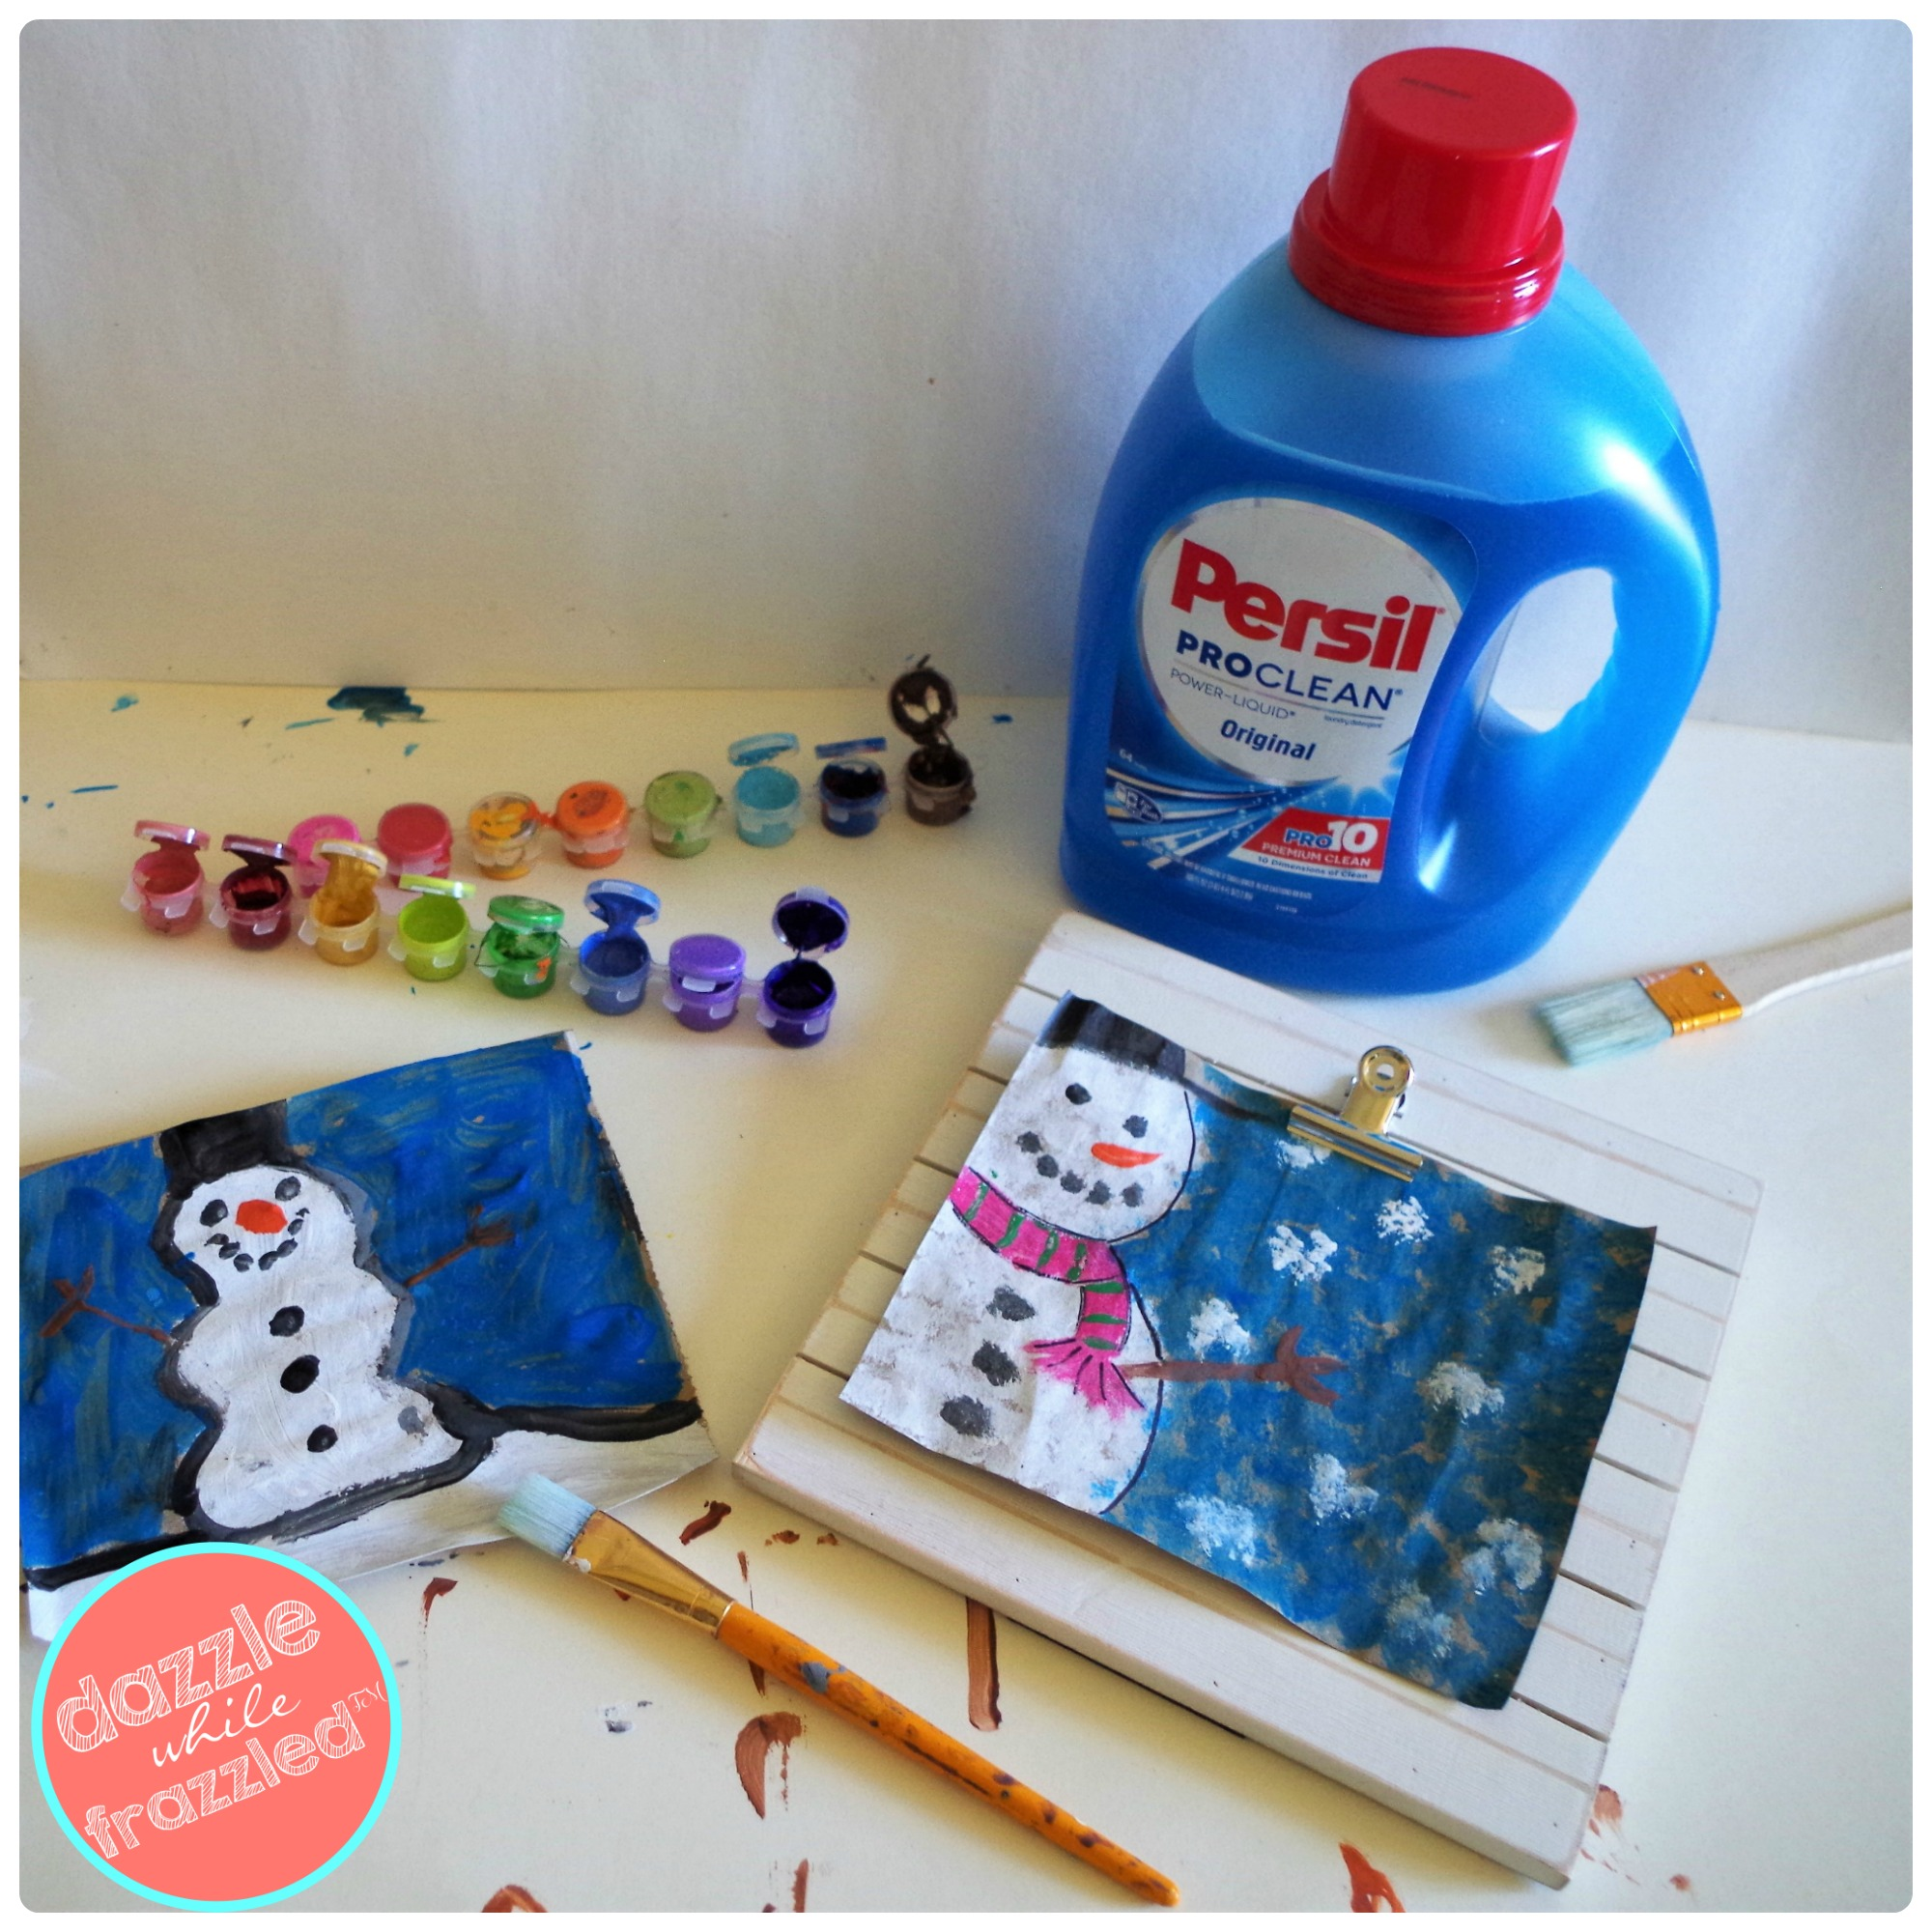 DIY easy snowmen winter Christmas art. Easy arts-n-crafts project clean up with Persil laundry detergent to remove paint from kids clothing.